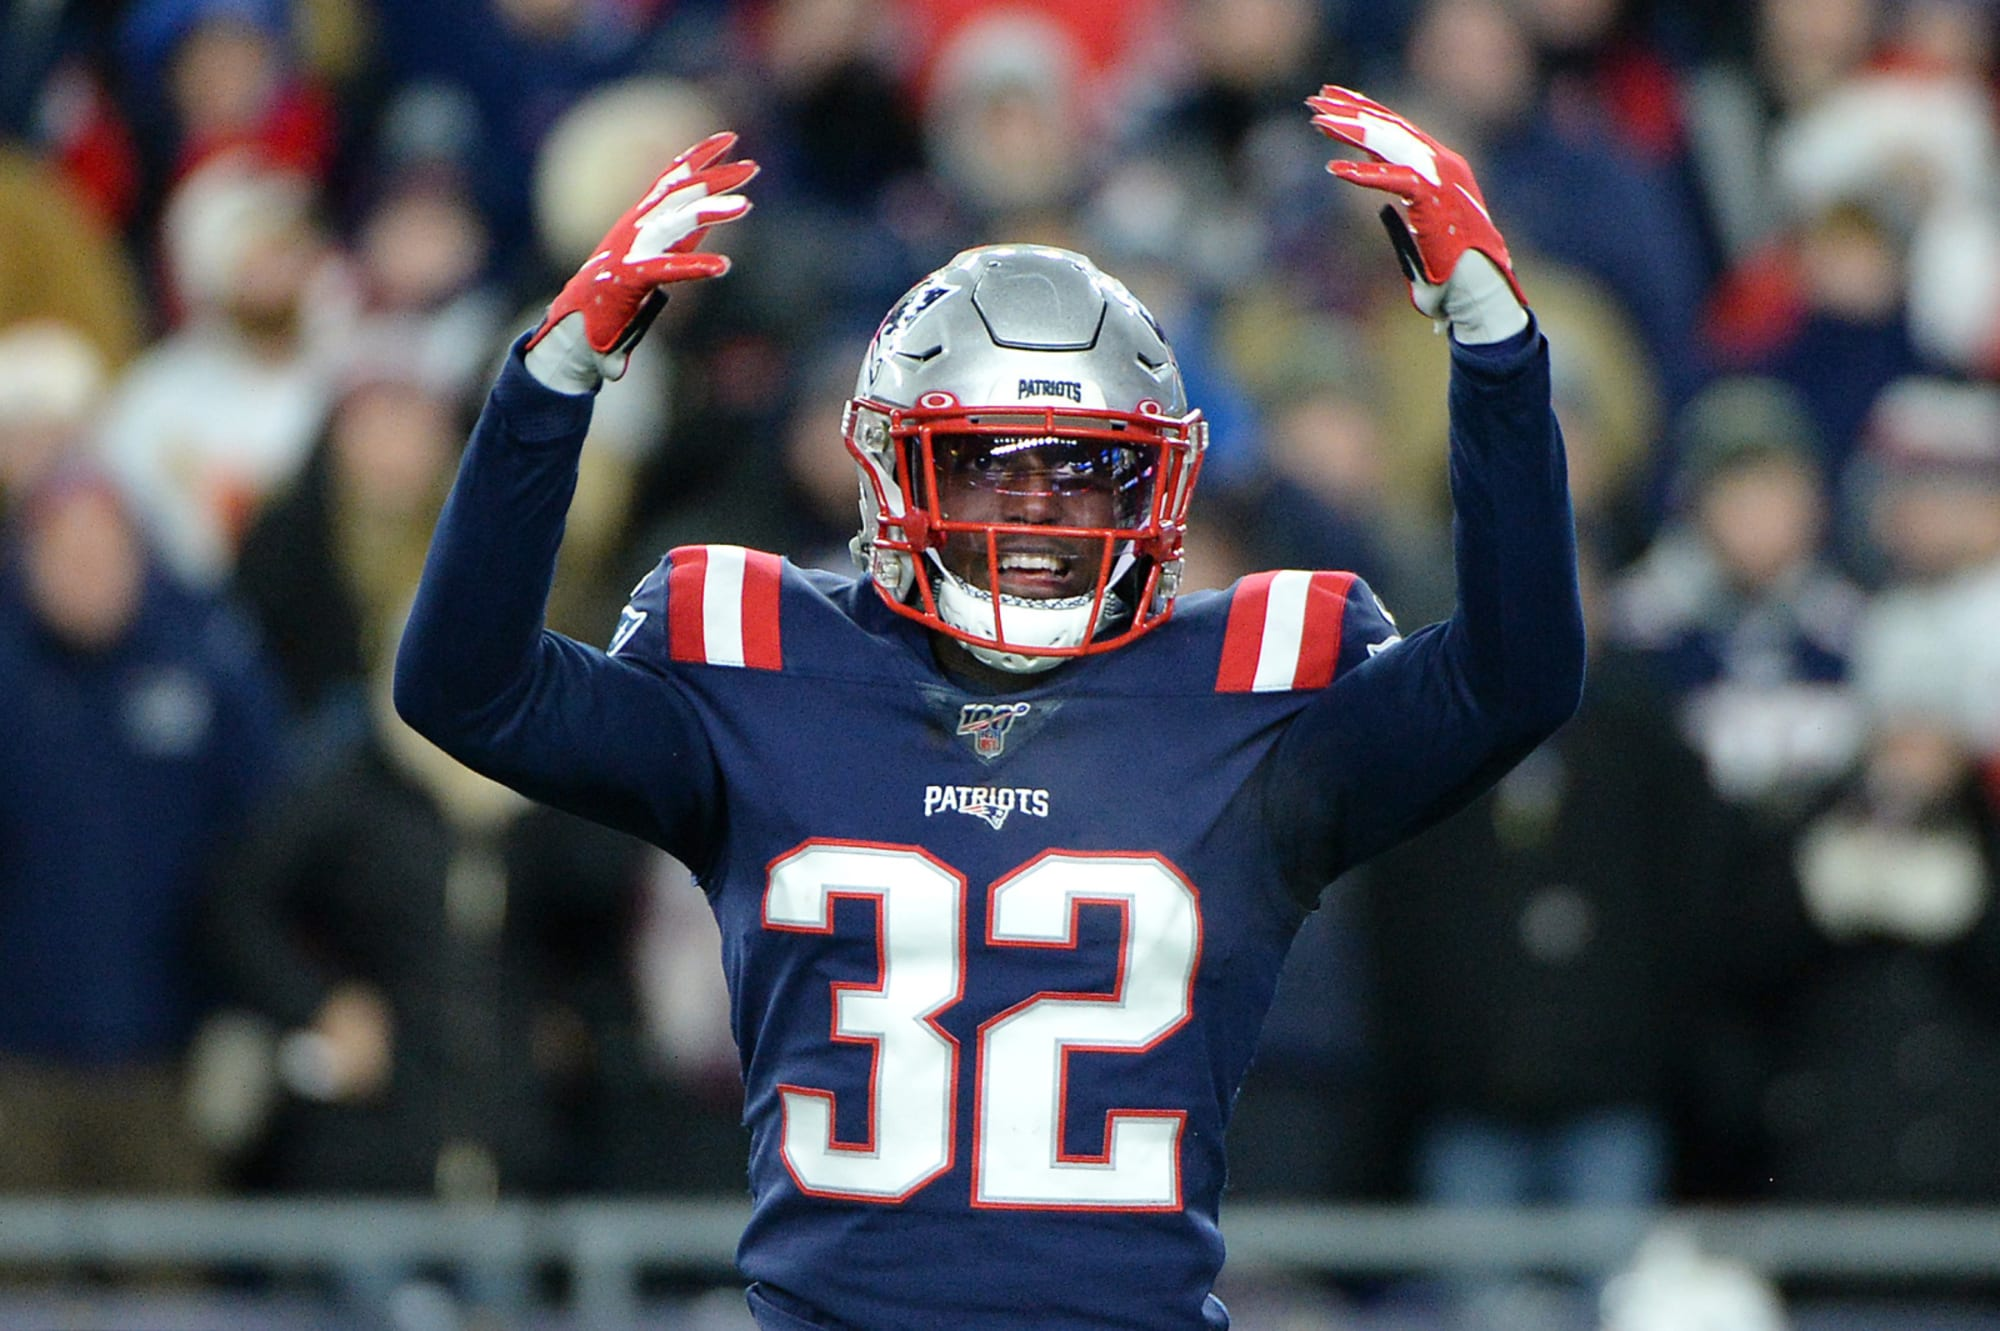 Patriots retain Devin McCourty on two-year, $23M contract